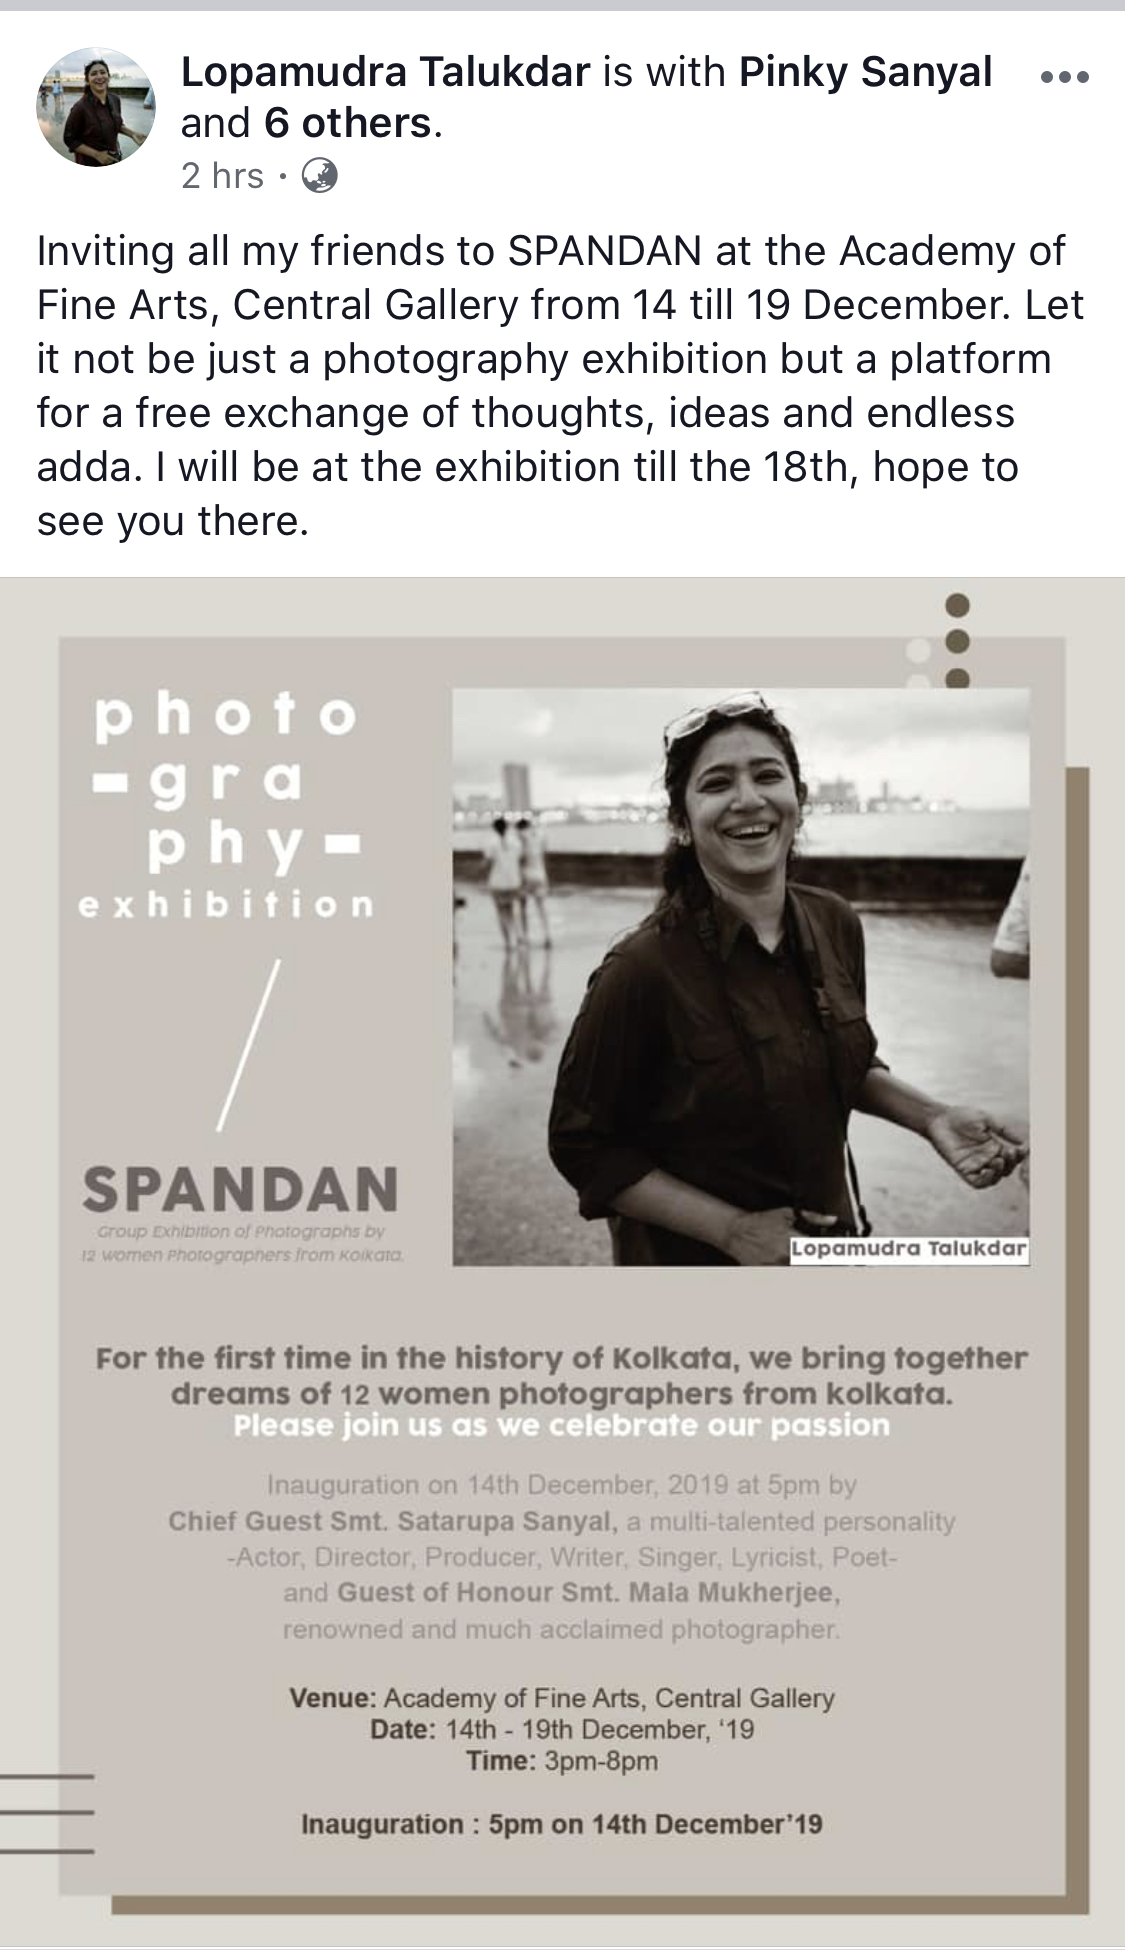 Lopamudra Talukdar's Photography Exhibition